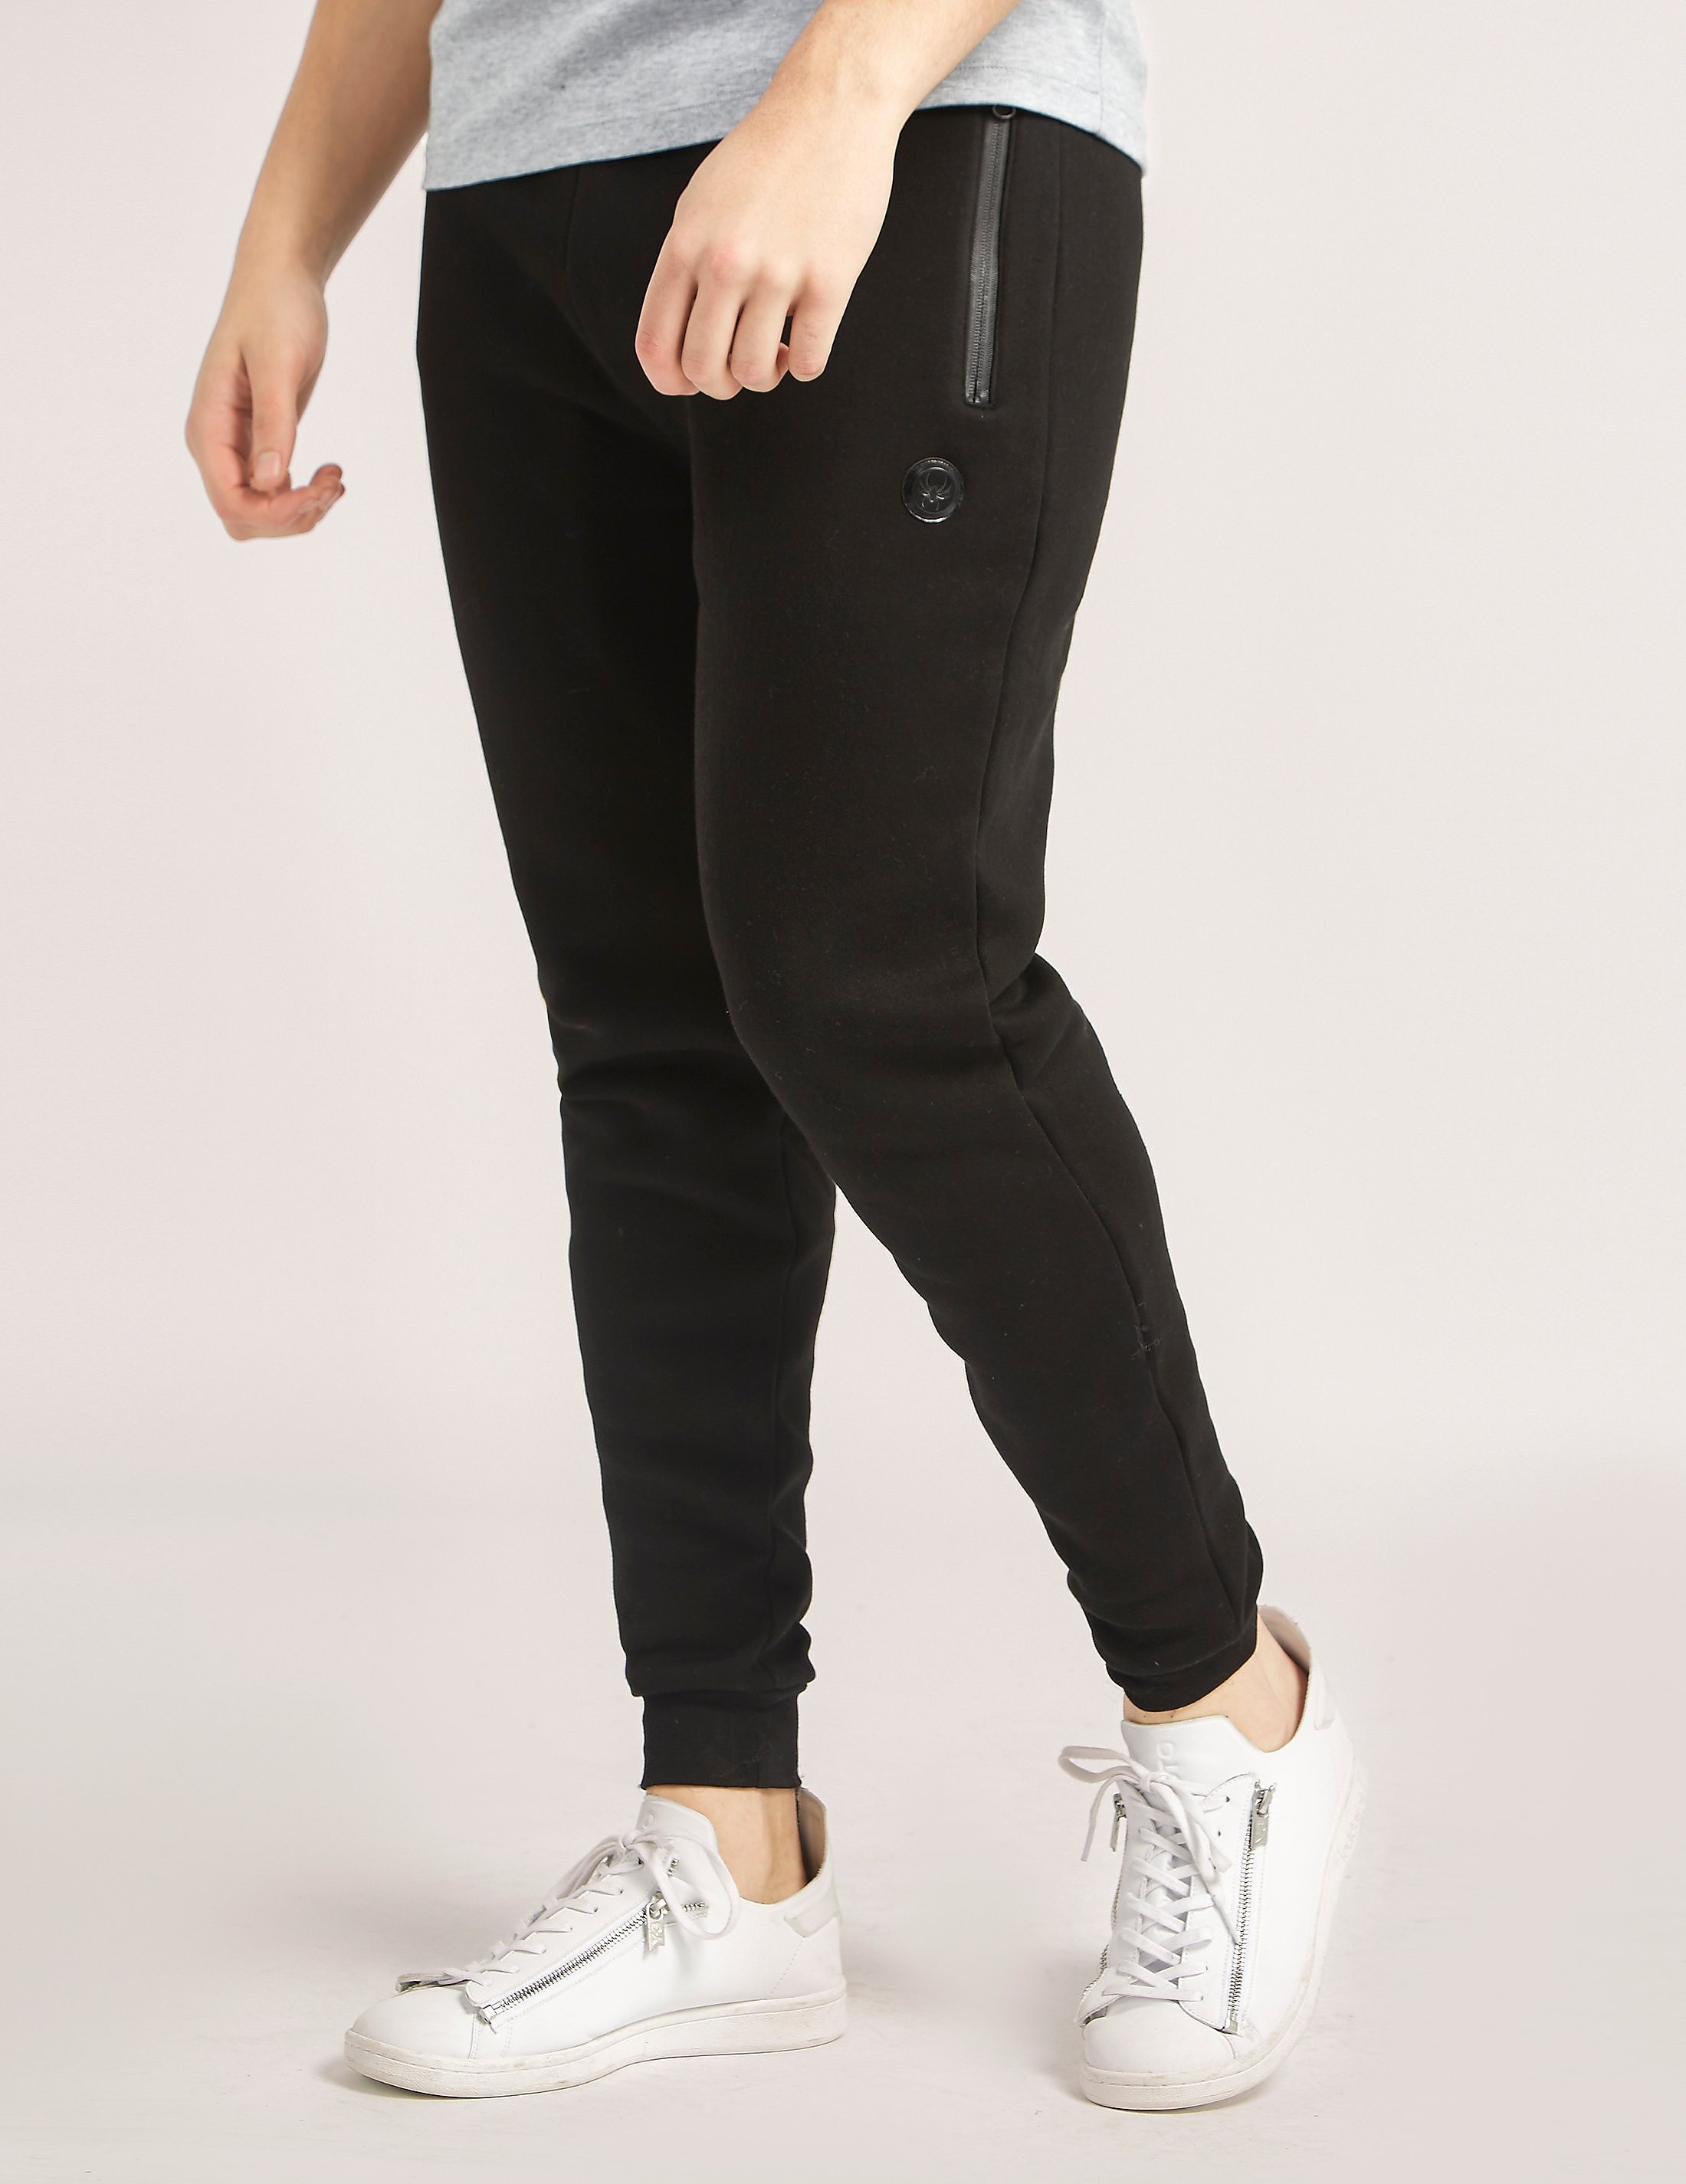 Intense Clothing Widow Pin Track Pants